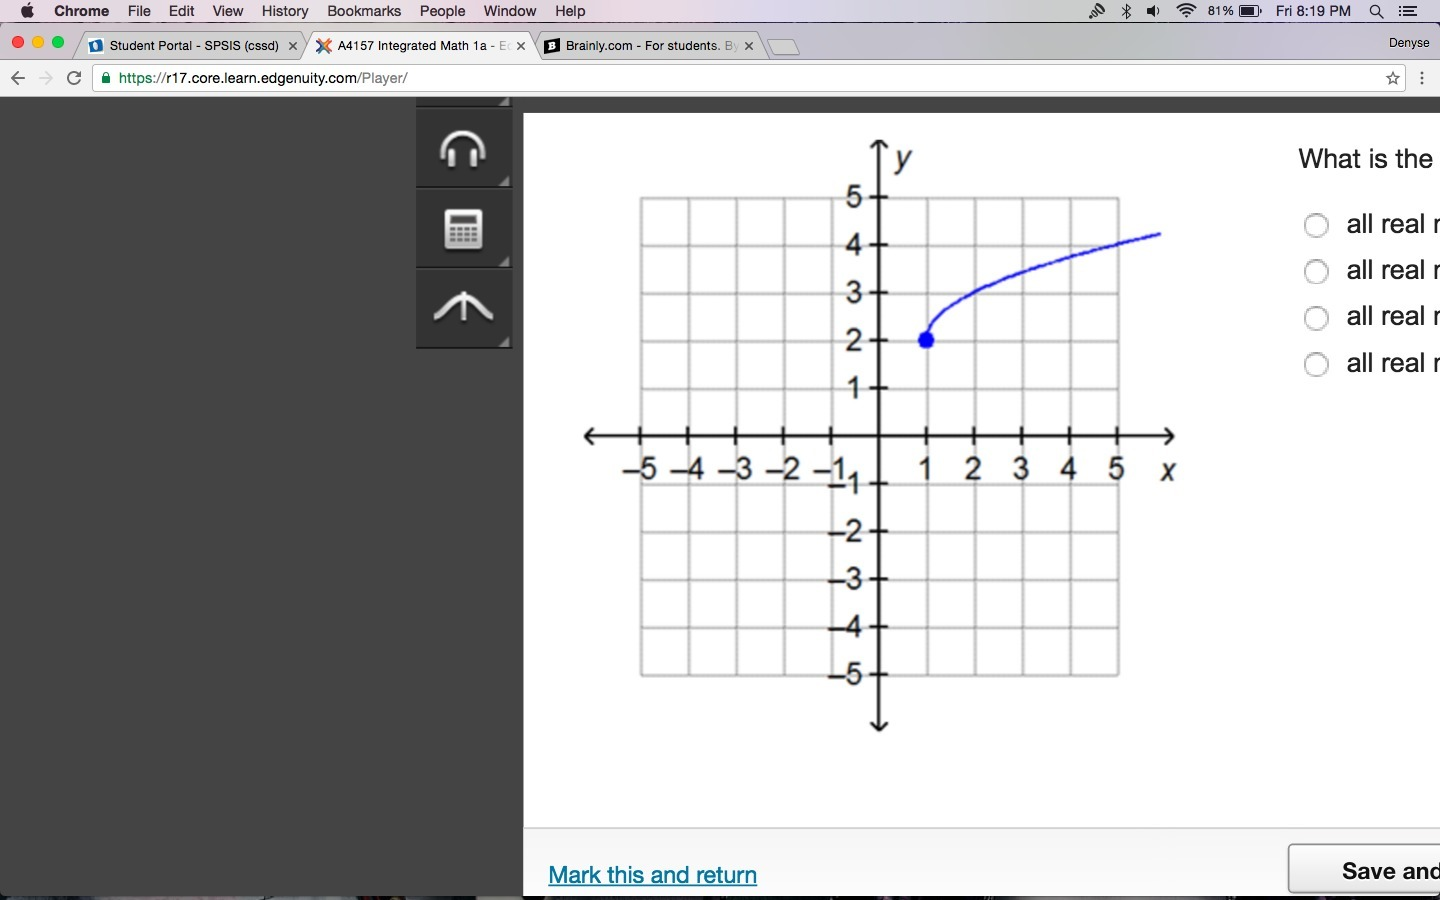 What Is The Range Of The Function On The Graph Al Real